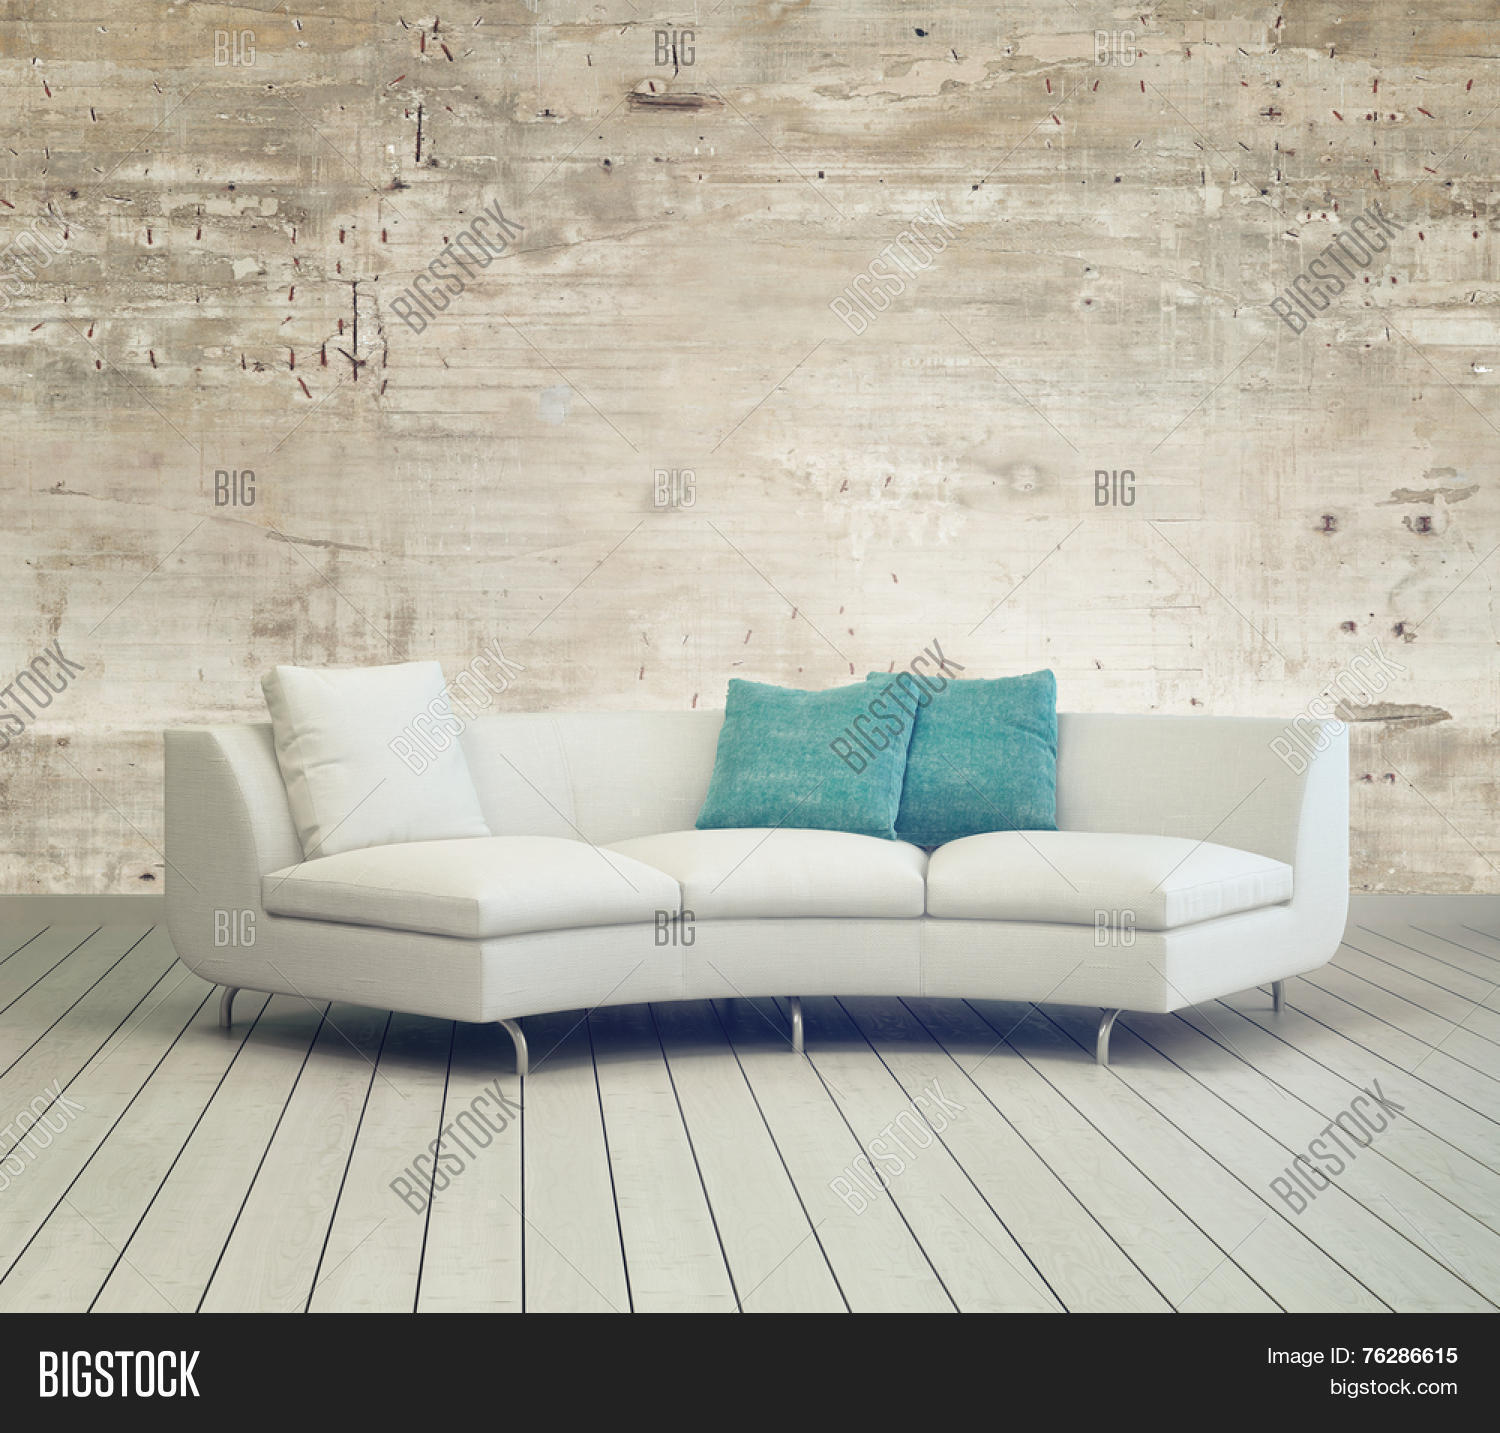 Swell 3D Rendering White Image Photo Free Trial Bigstock Pdpeps Interior Chair Design Pdpepsorg